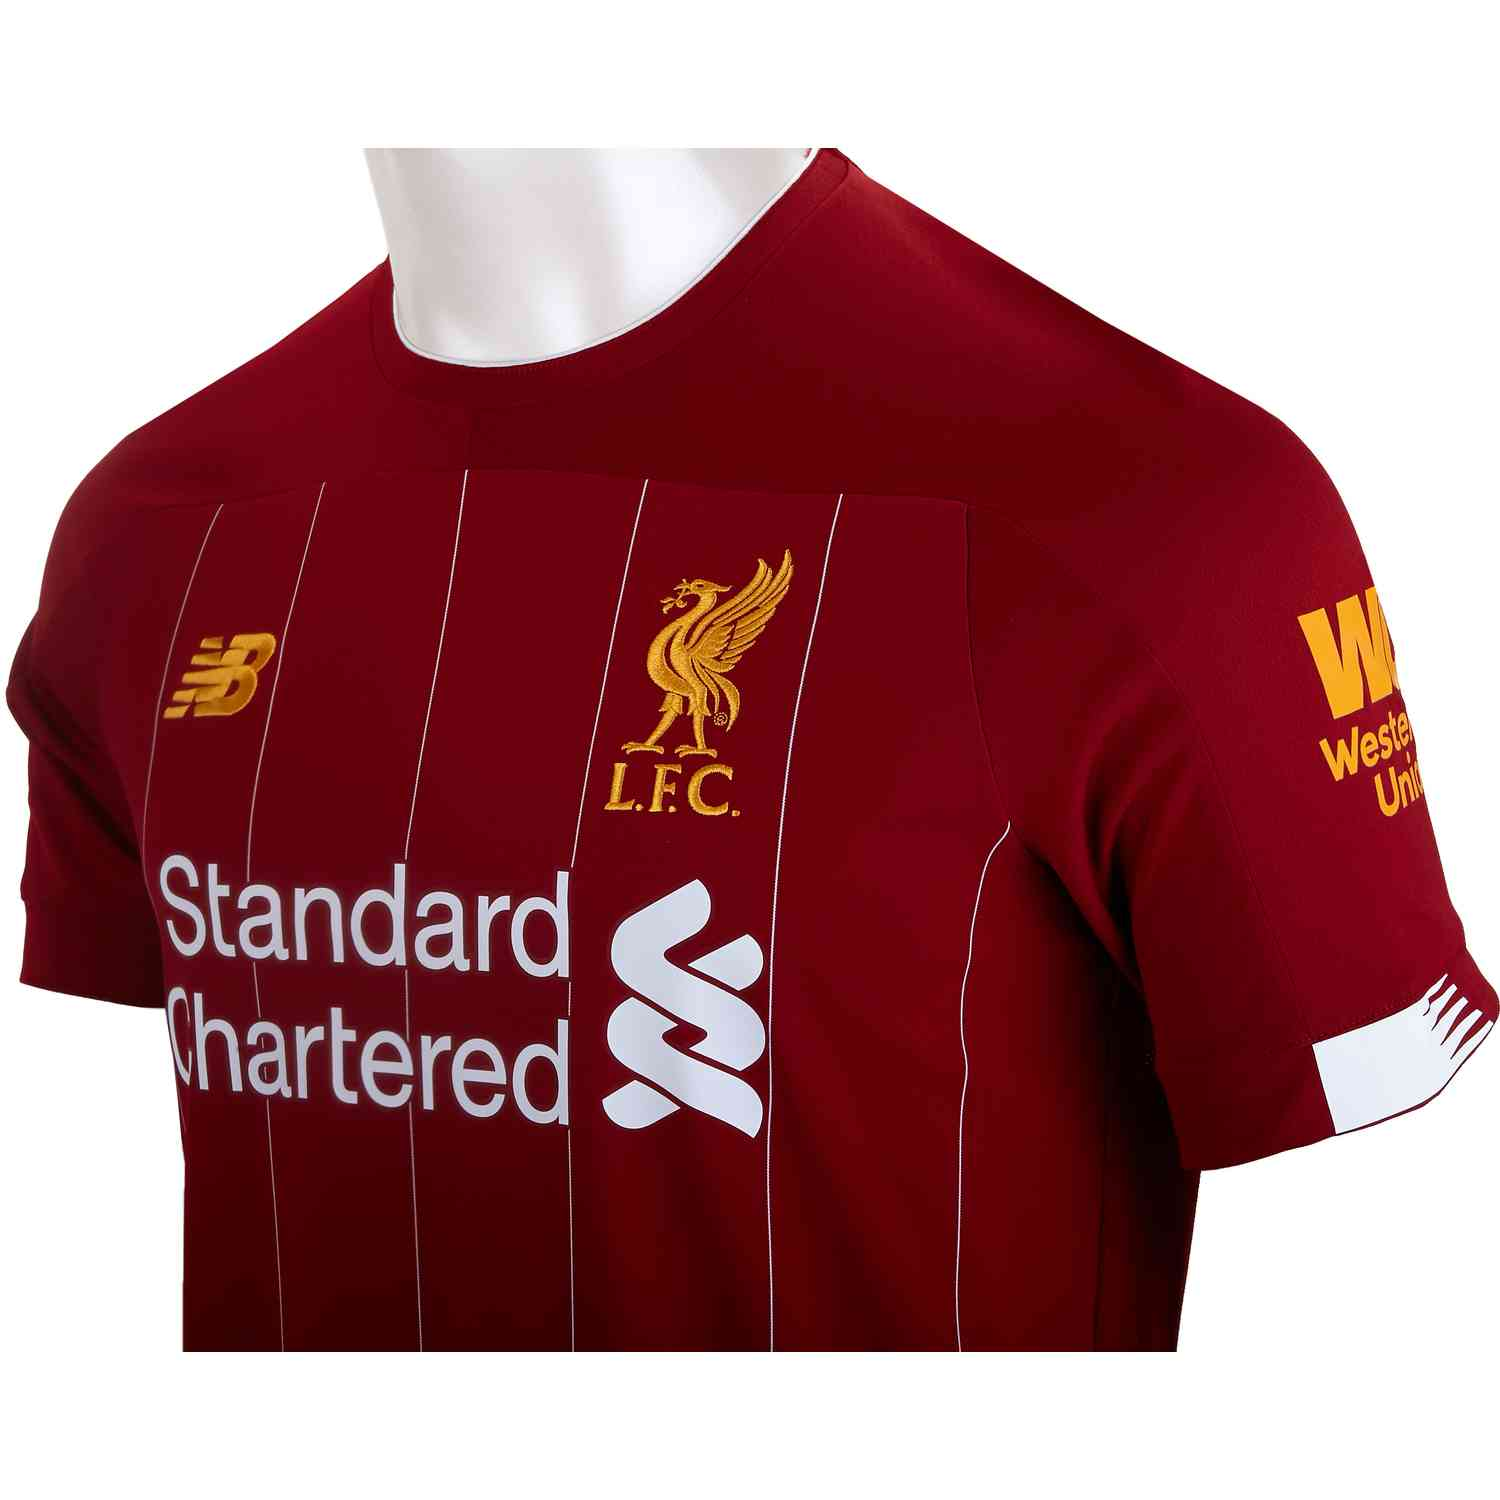 best website 9231c de499 2019/20 Mohamed Salah Liverpool Home Jersey - Soccer Master